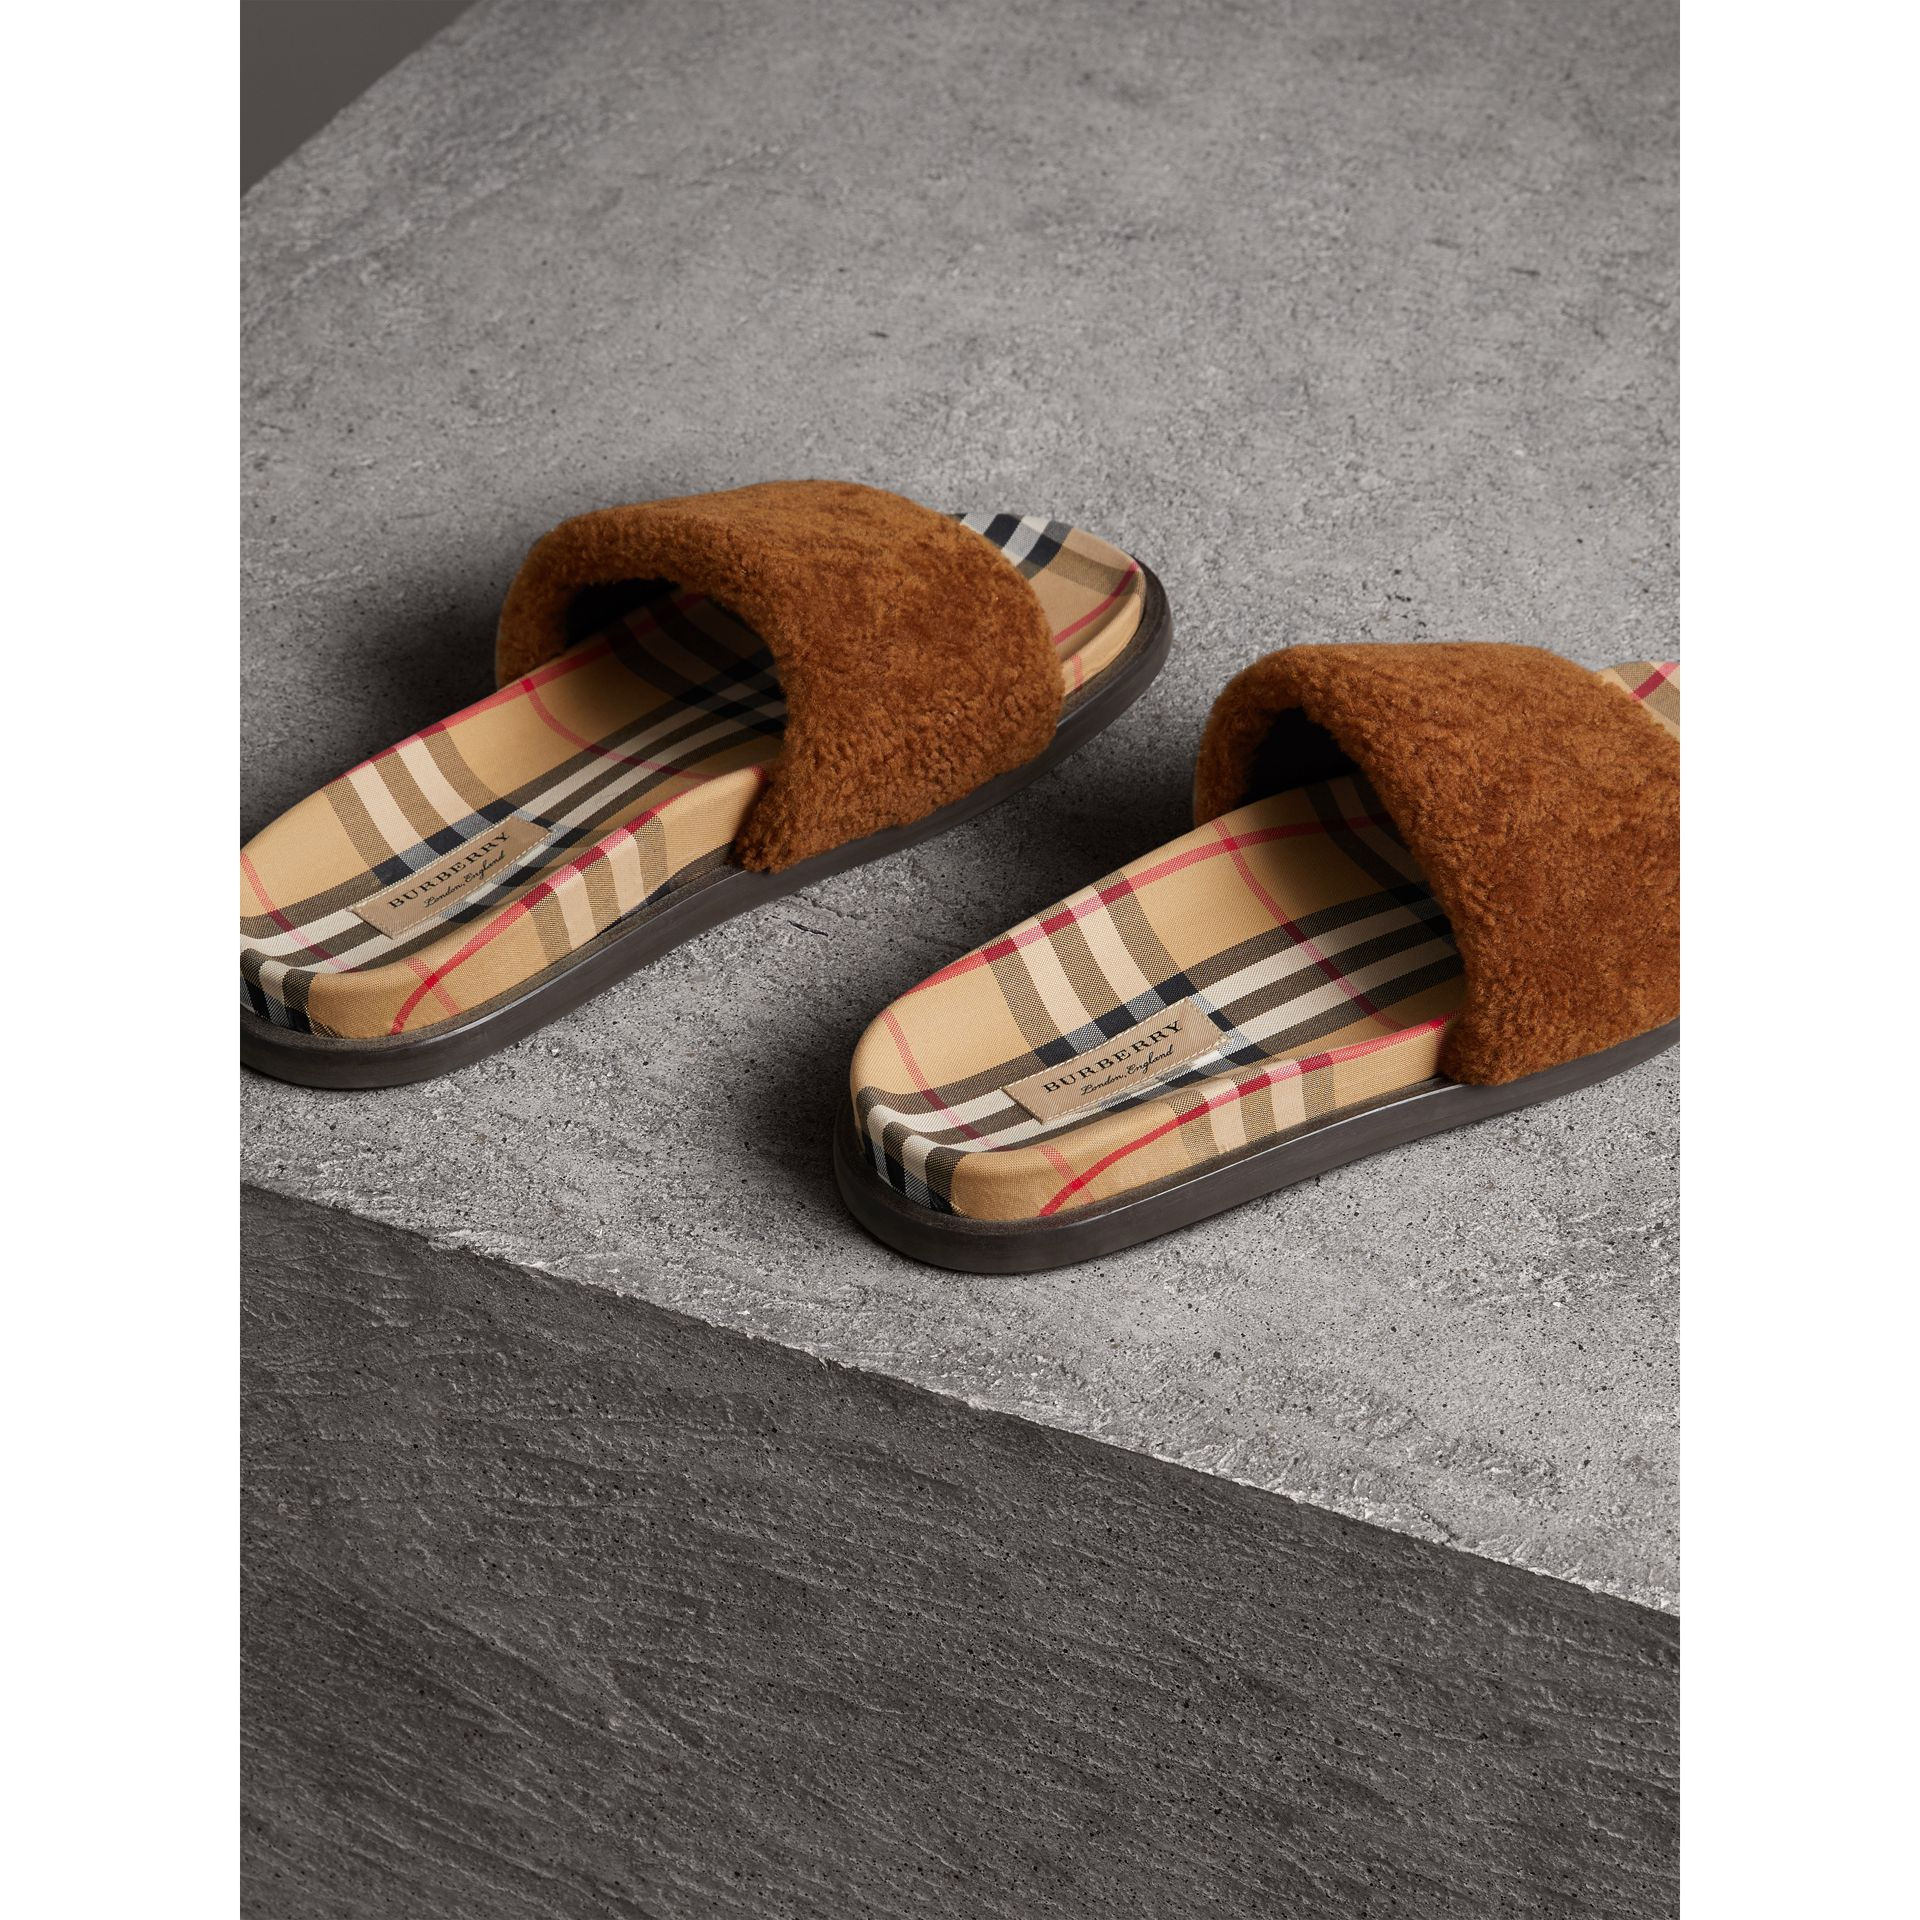 Shearling and Vintage Check Slides in Tan - Women | Burberry - gallery image 3